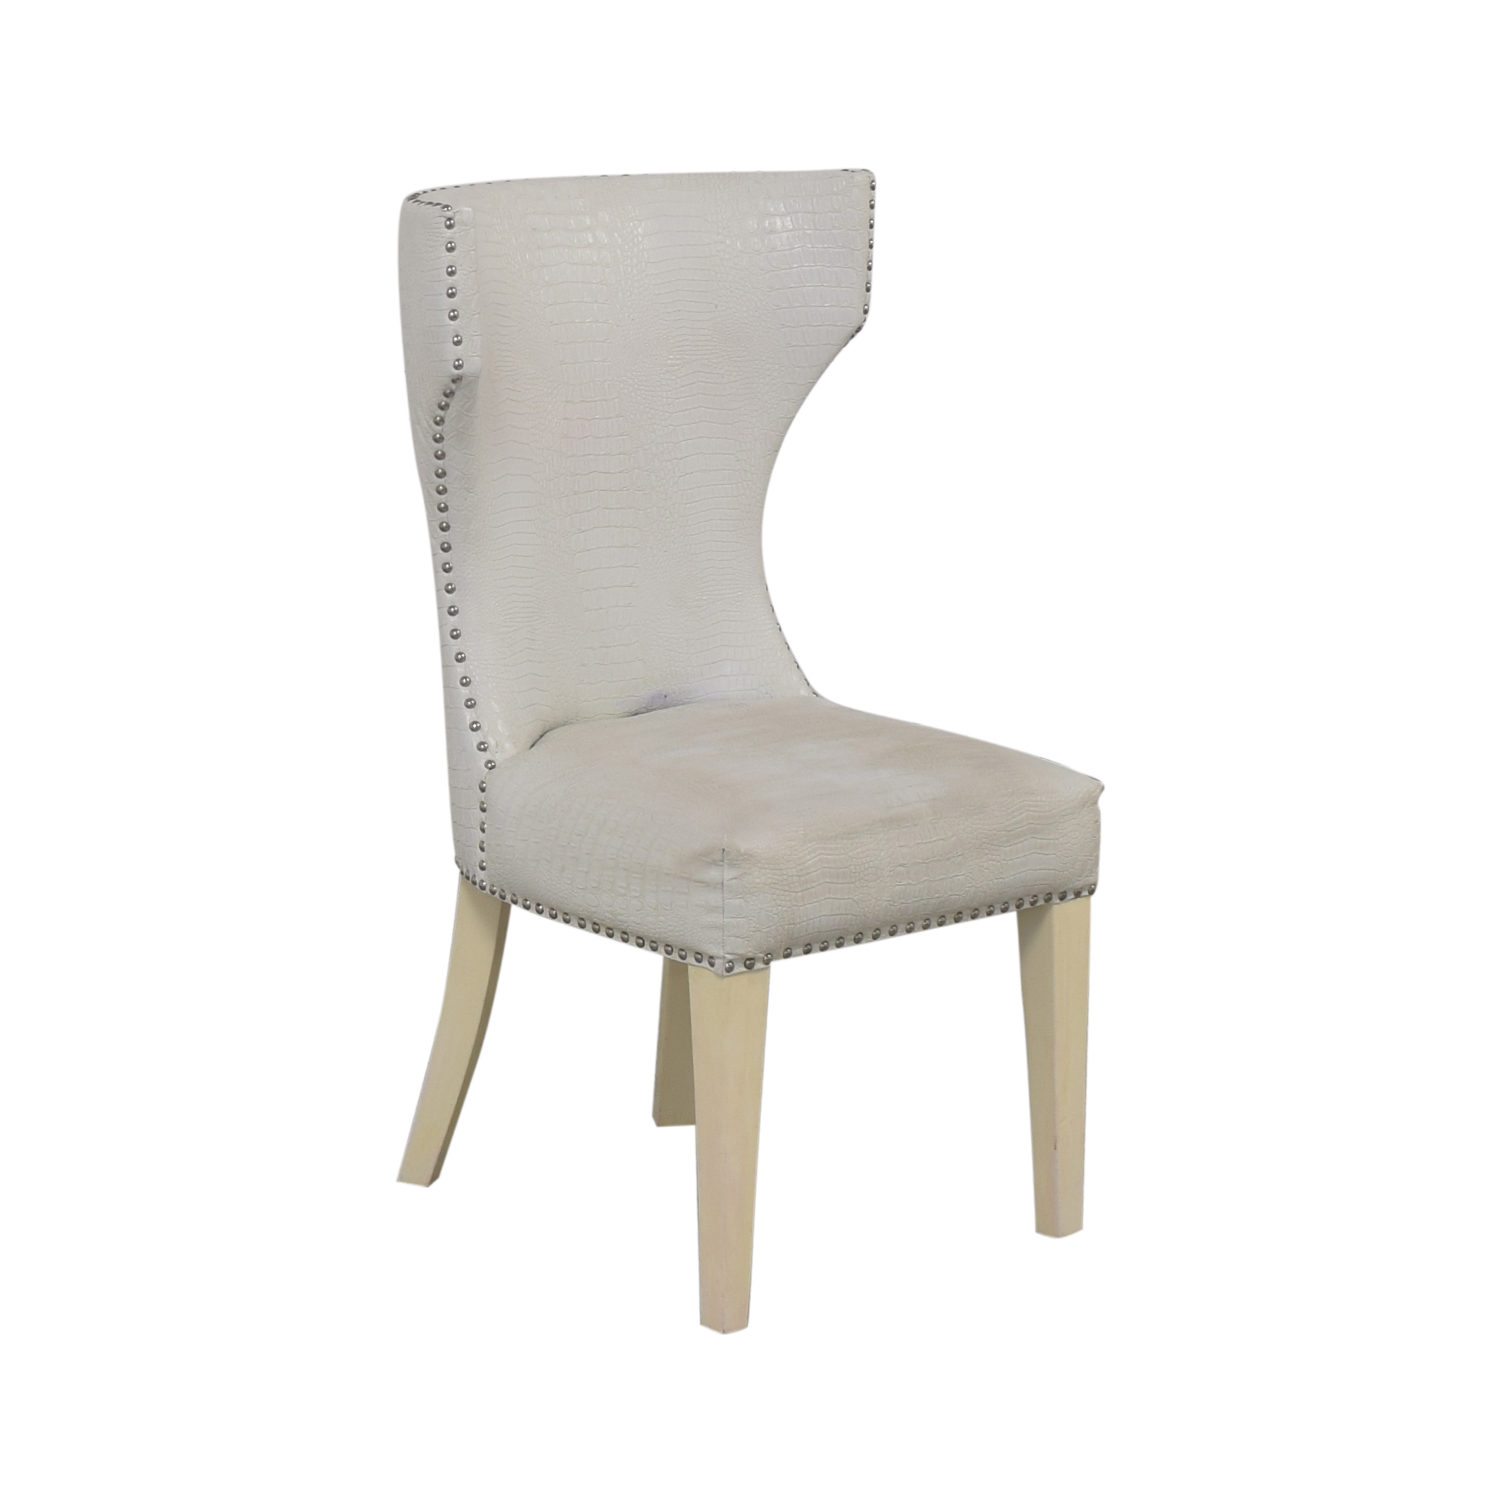 Shine by S.H.O. Verona Chair sale